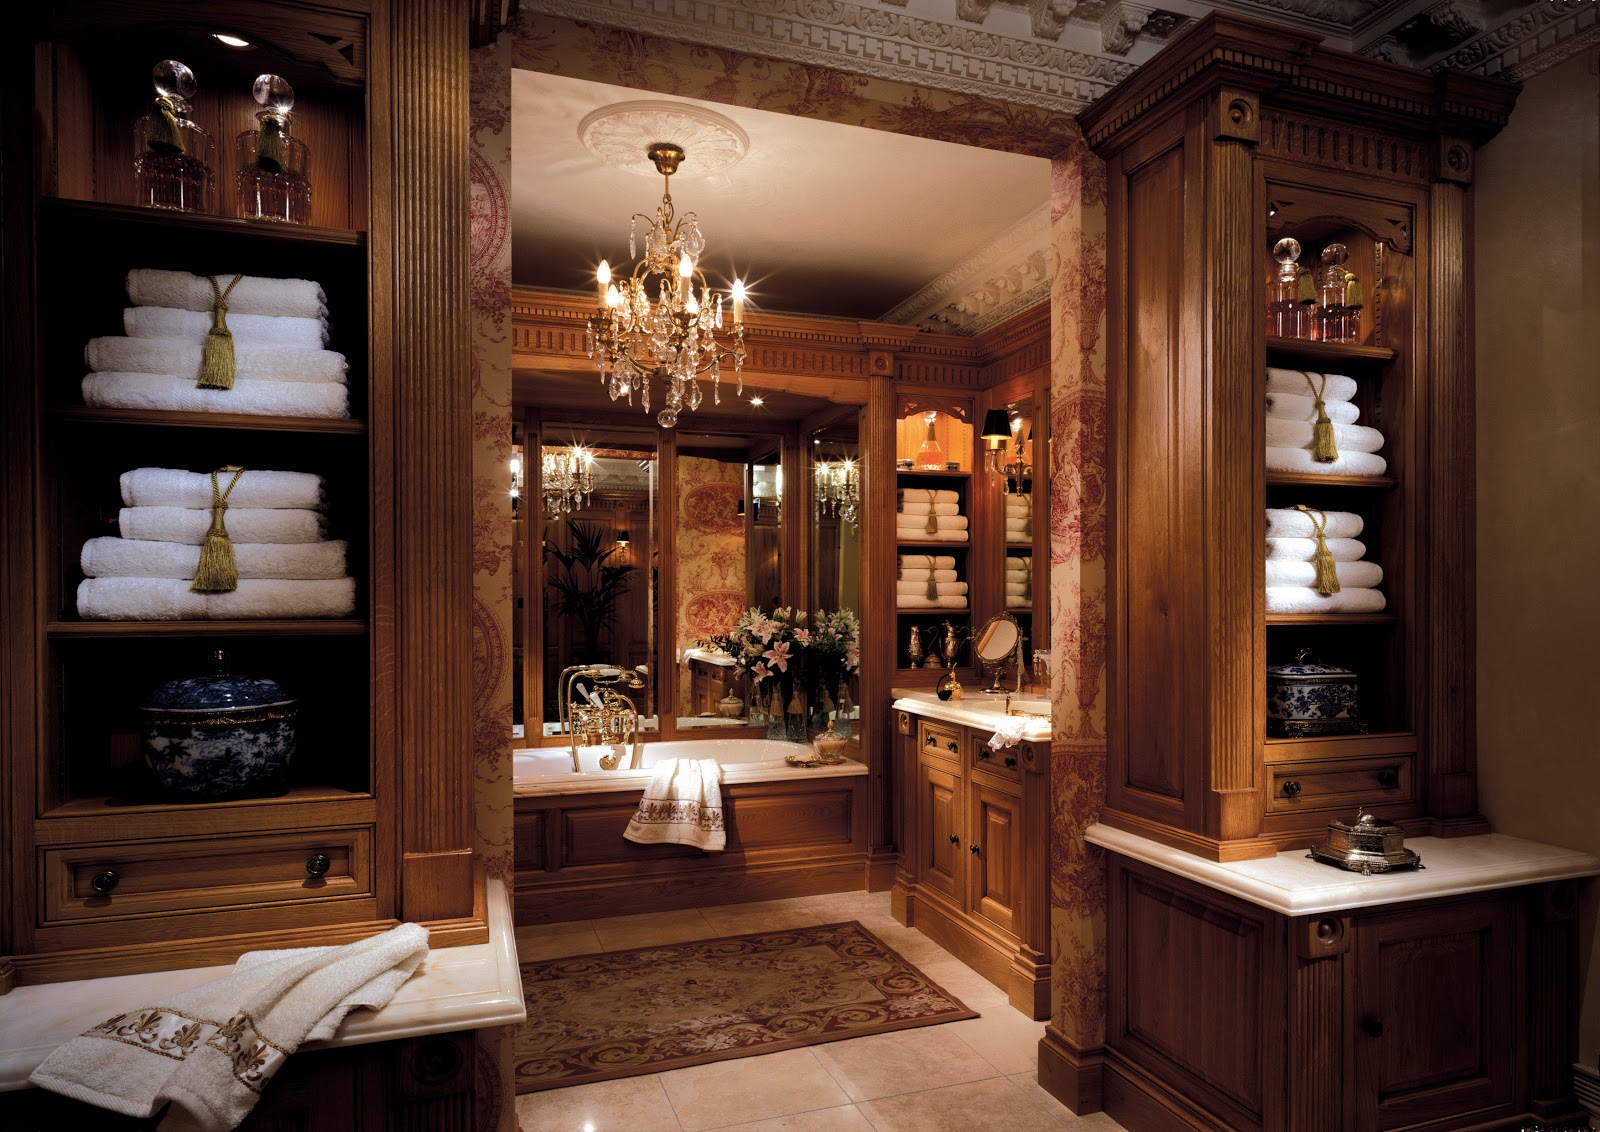 Luxury Bathrooms: TRADITION INTERIORS OF NOTTINGHAM: Clive Christian Luxury